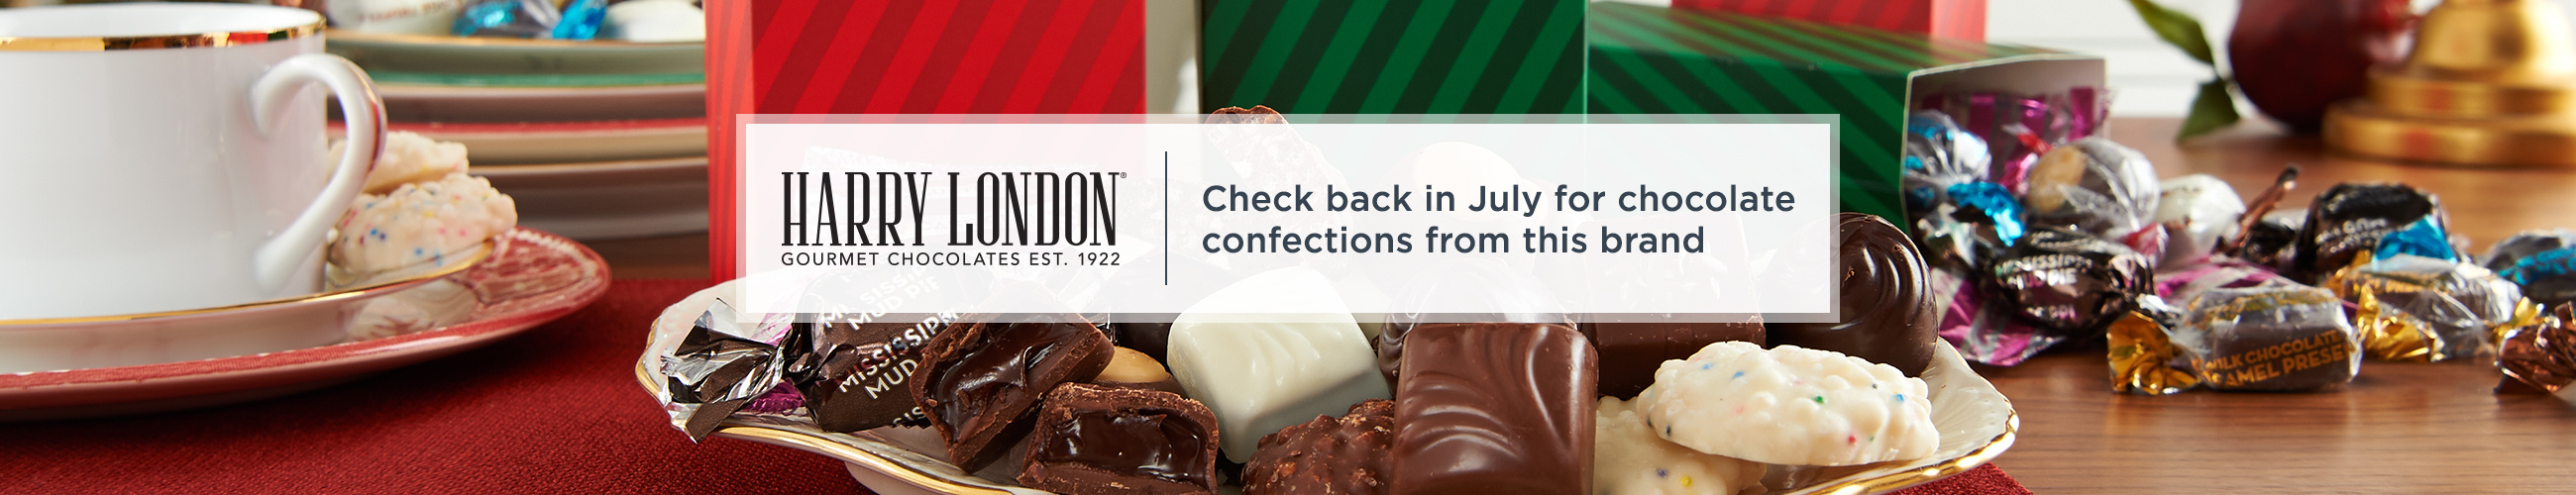 Harry London. Check back in July for chocolate confections from this brand